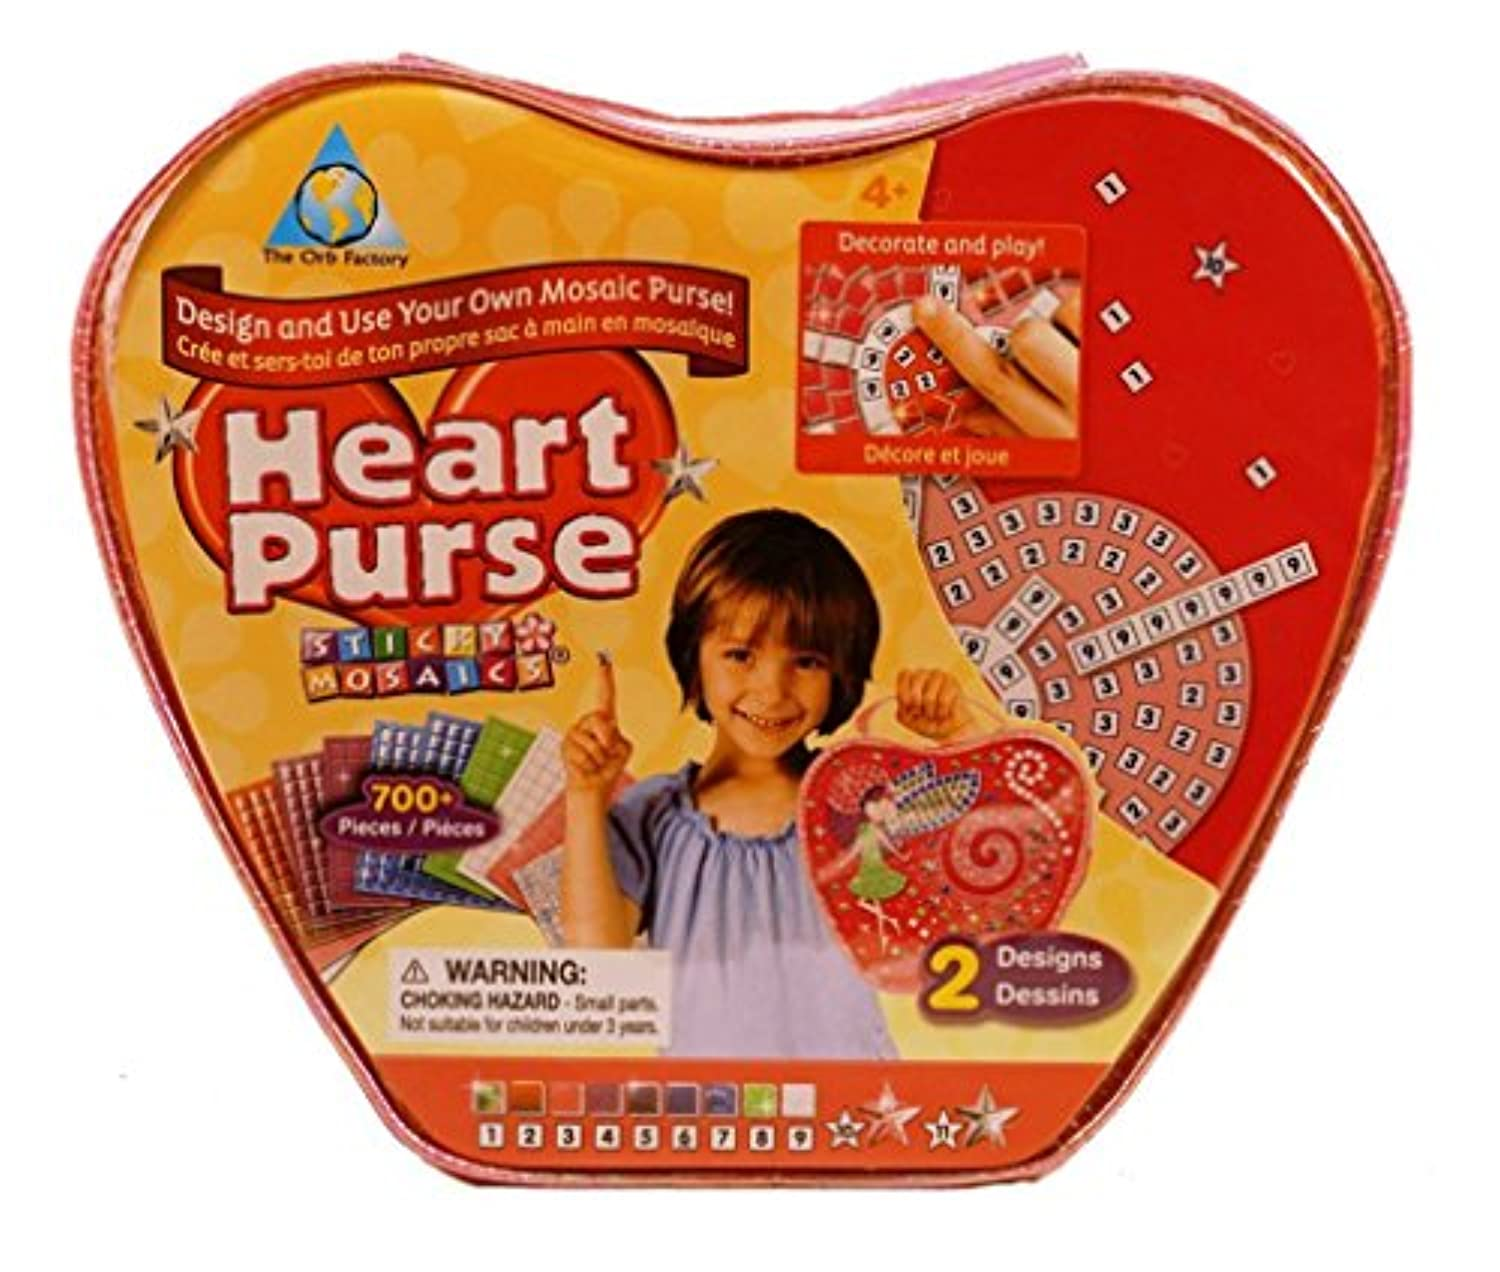 Sticky Mosaics Heart Purse by The Orb Factory (62521) [Toy]